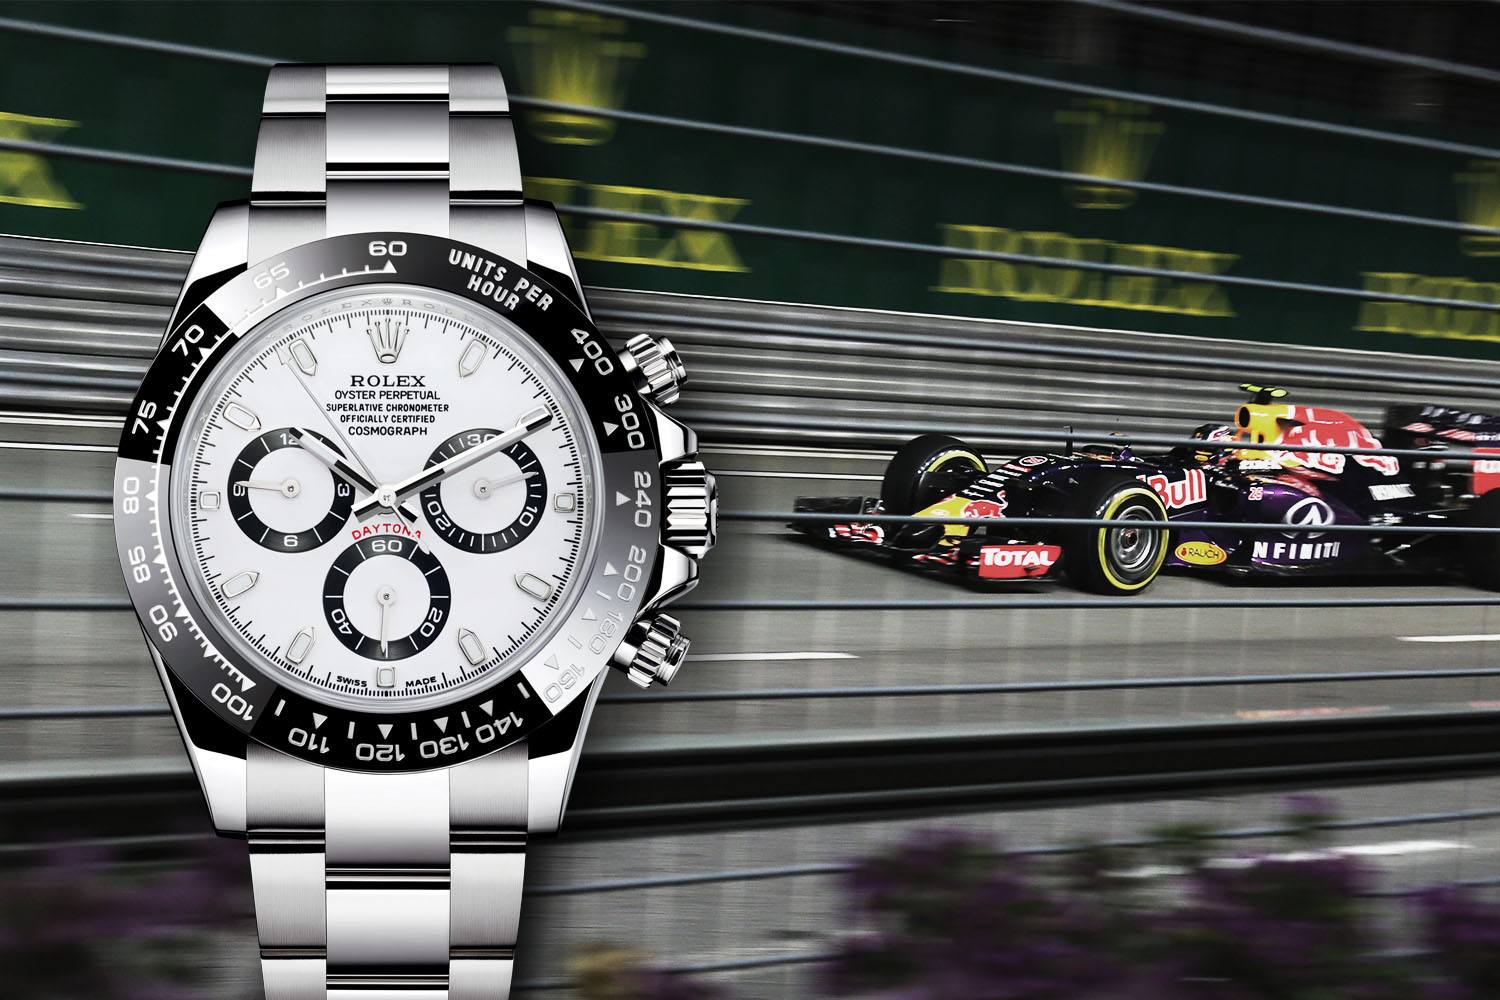 and our easy watch circuit inspired watchgecko you s owning re kinds need motorsport for driver reason watches team they fourth on a generally racing wear there drivers show favourite all to allegiance or reasons occasions auto of car practical one